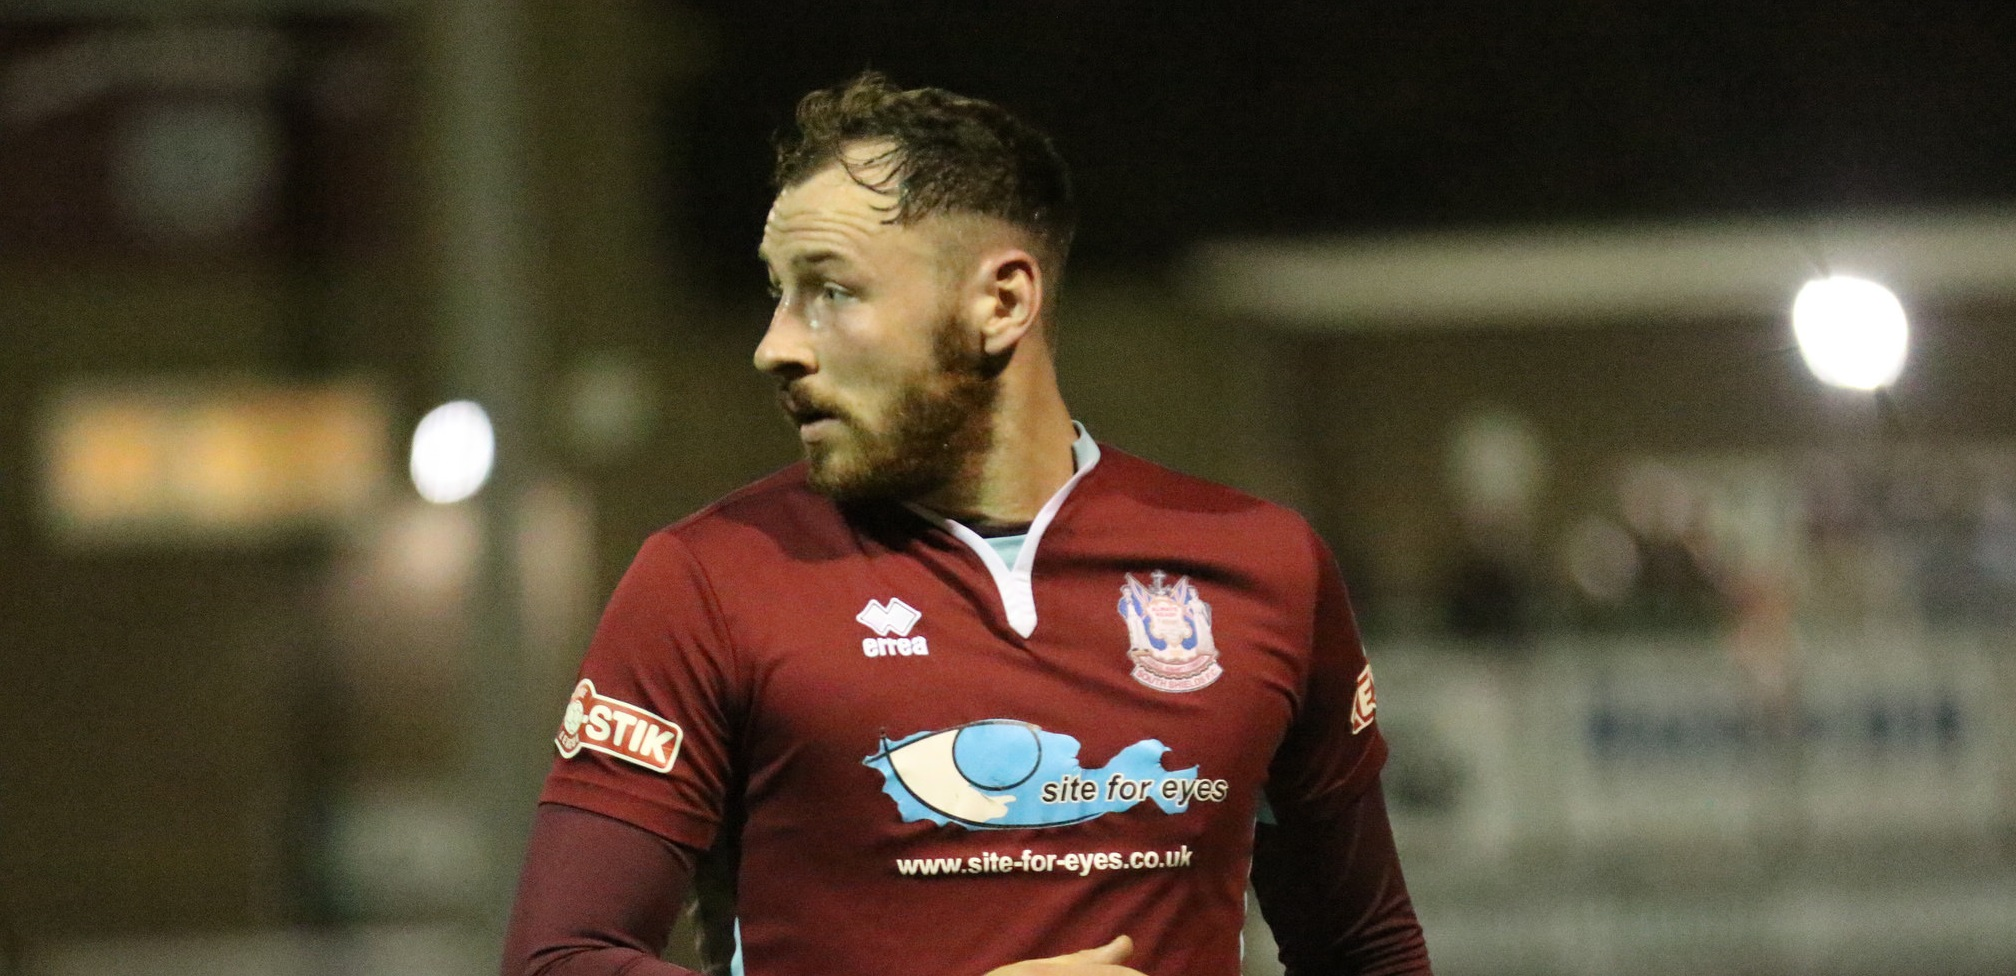 Louis Storey pays tribute to SSFC after completing move to Hebburn